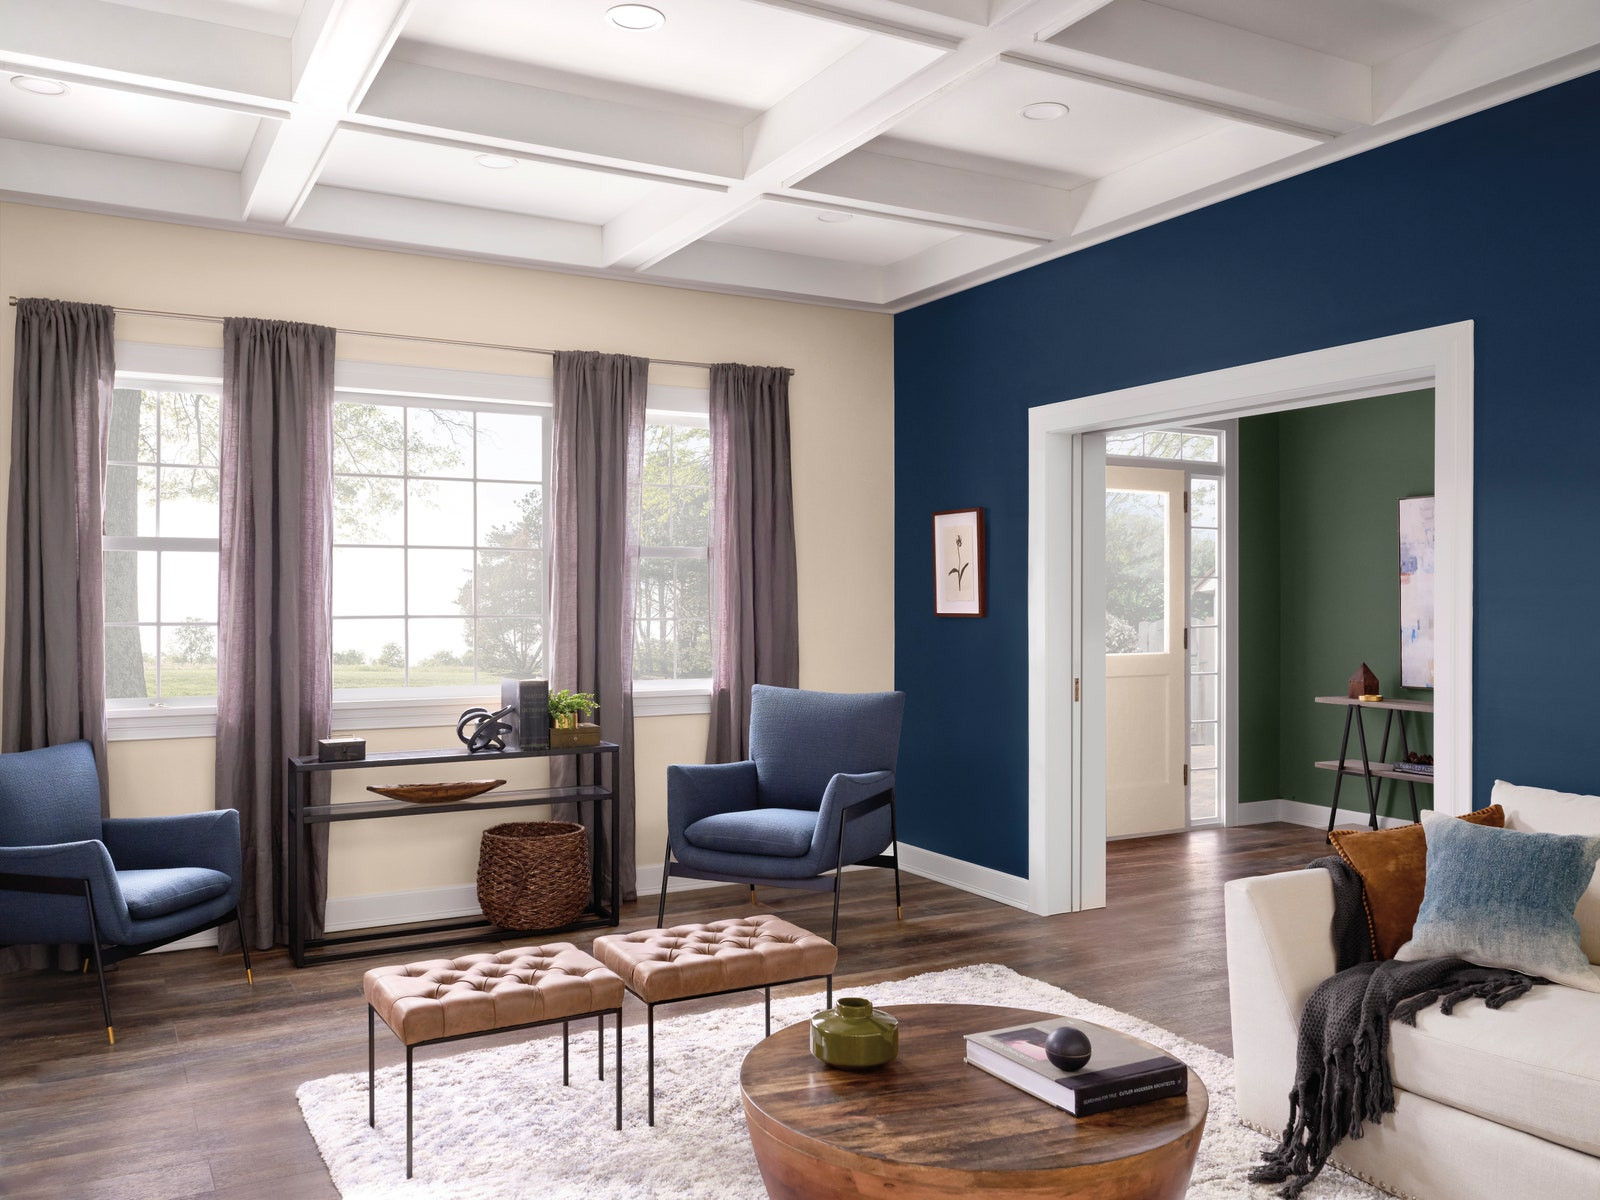 Living Room Color Schemes 2020  The Color Trends We'll Be Seeing in 2020 According to